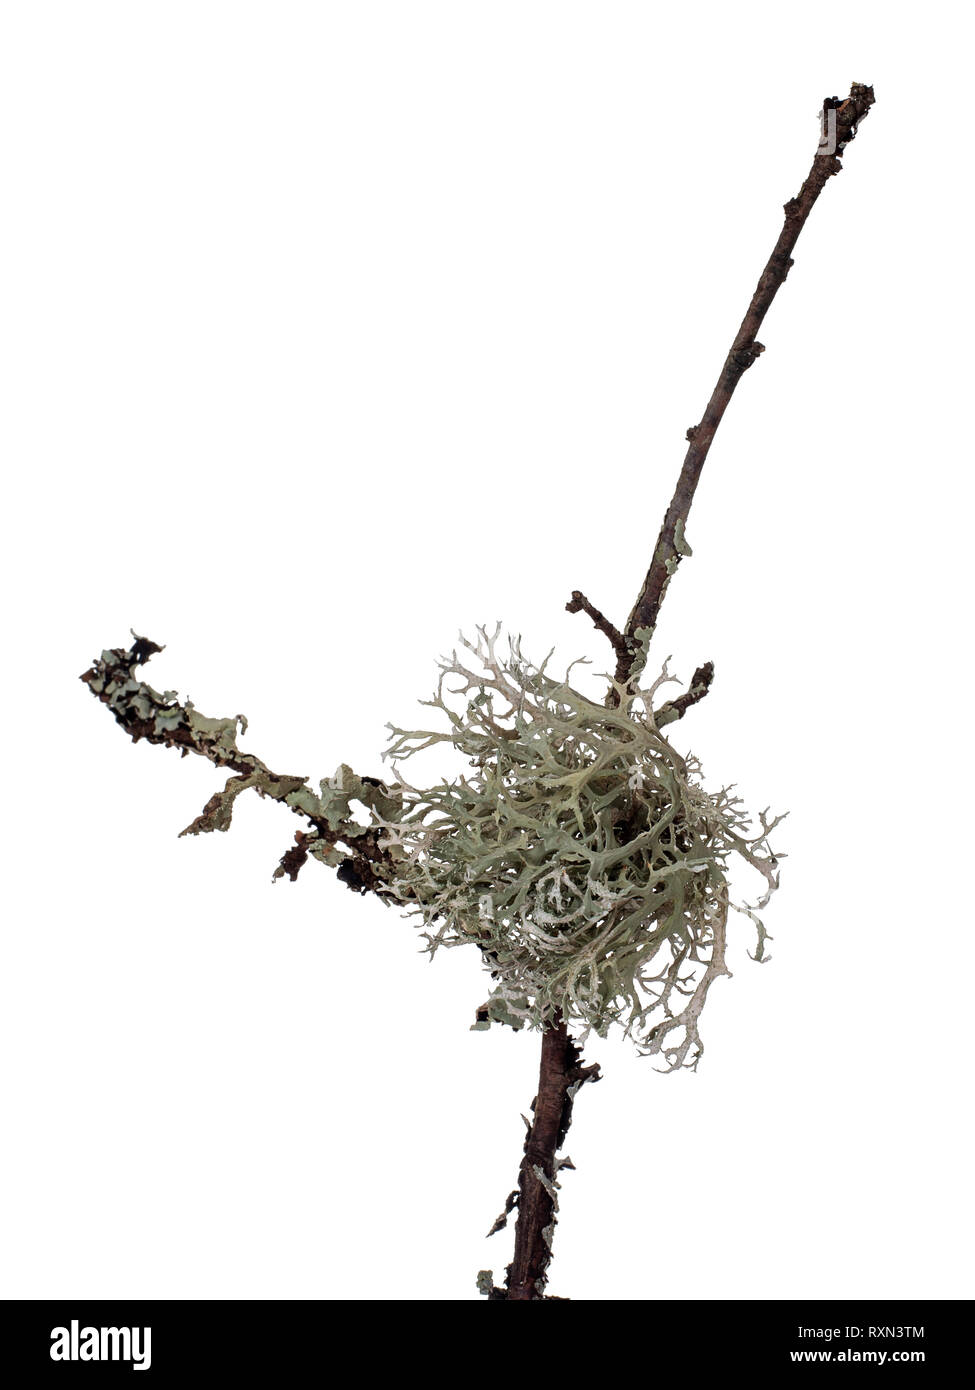 Ramalina lichen, green fruticose type with flattened, strap-like branches. Aka strap or cartilage lichens. Closeup, on twig, isolated on white. - Stock Image